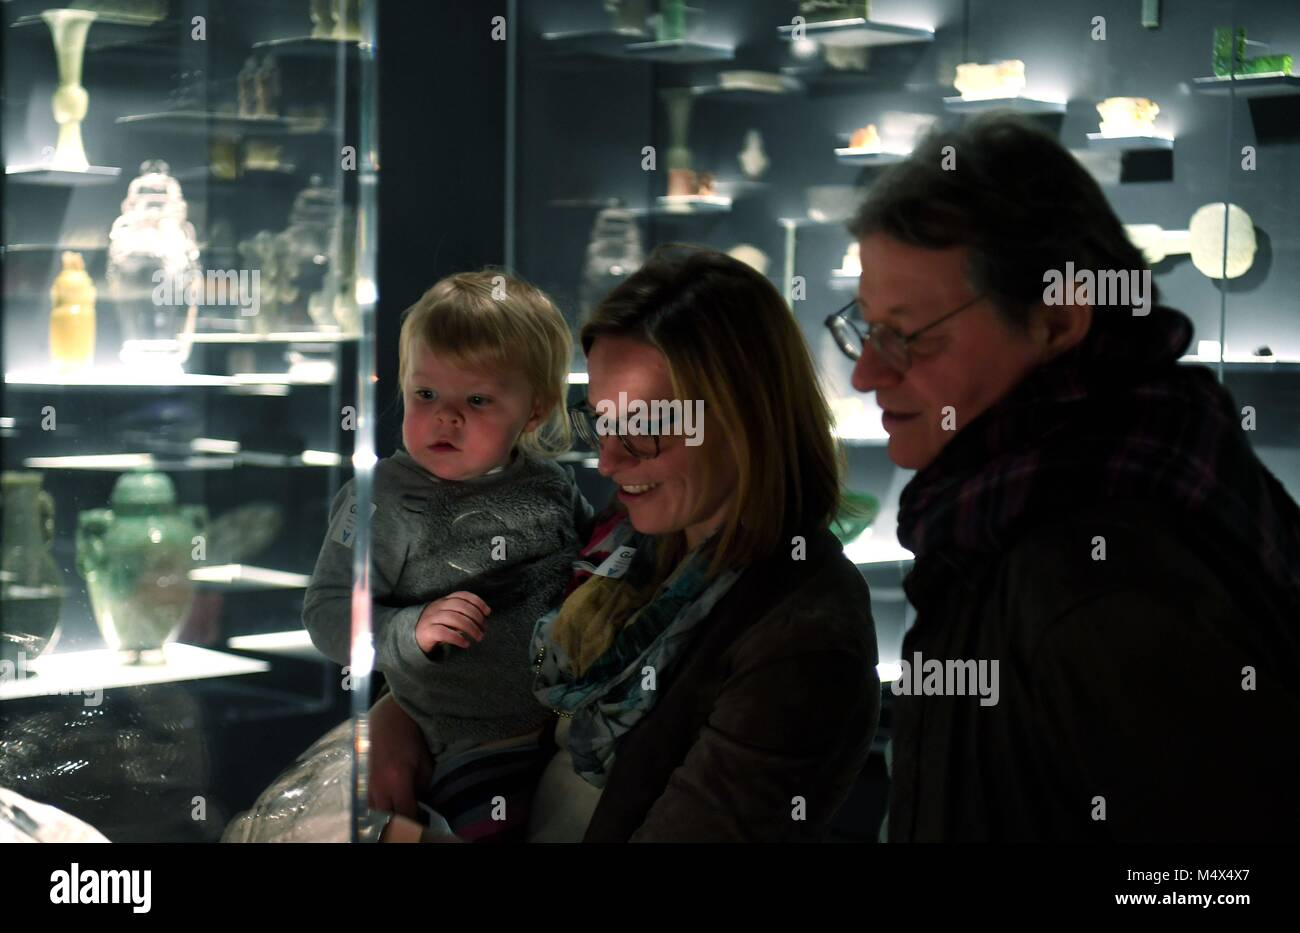 San Francisco, USA. 18th Feb, 2018. People visit a jade crafts exhibition at Asian Art Museum in San Francisco, - Stock Image